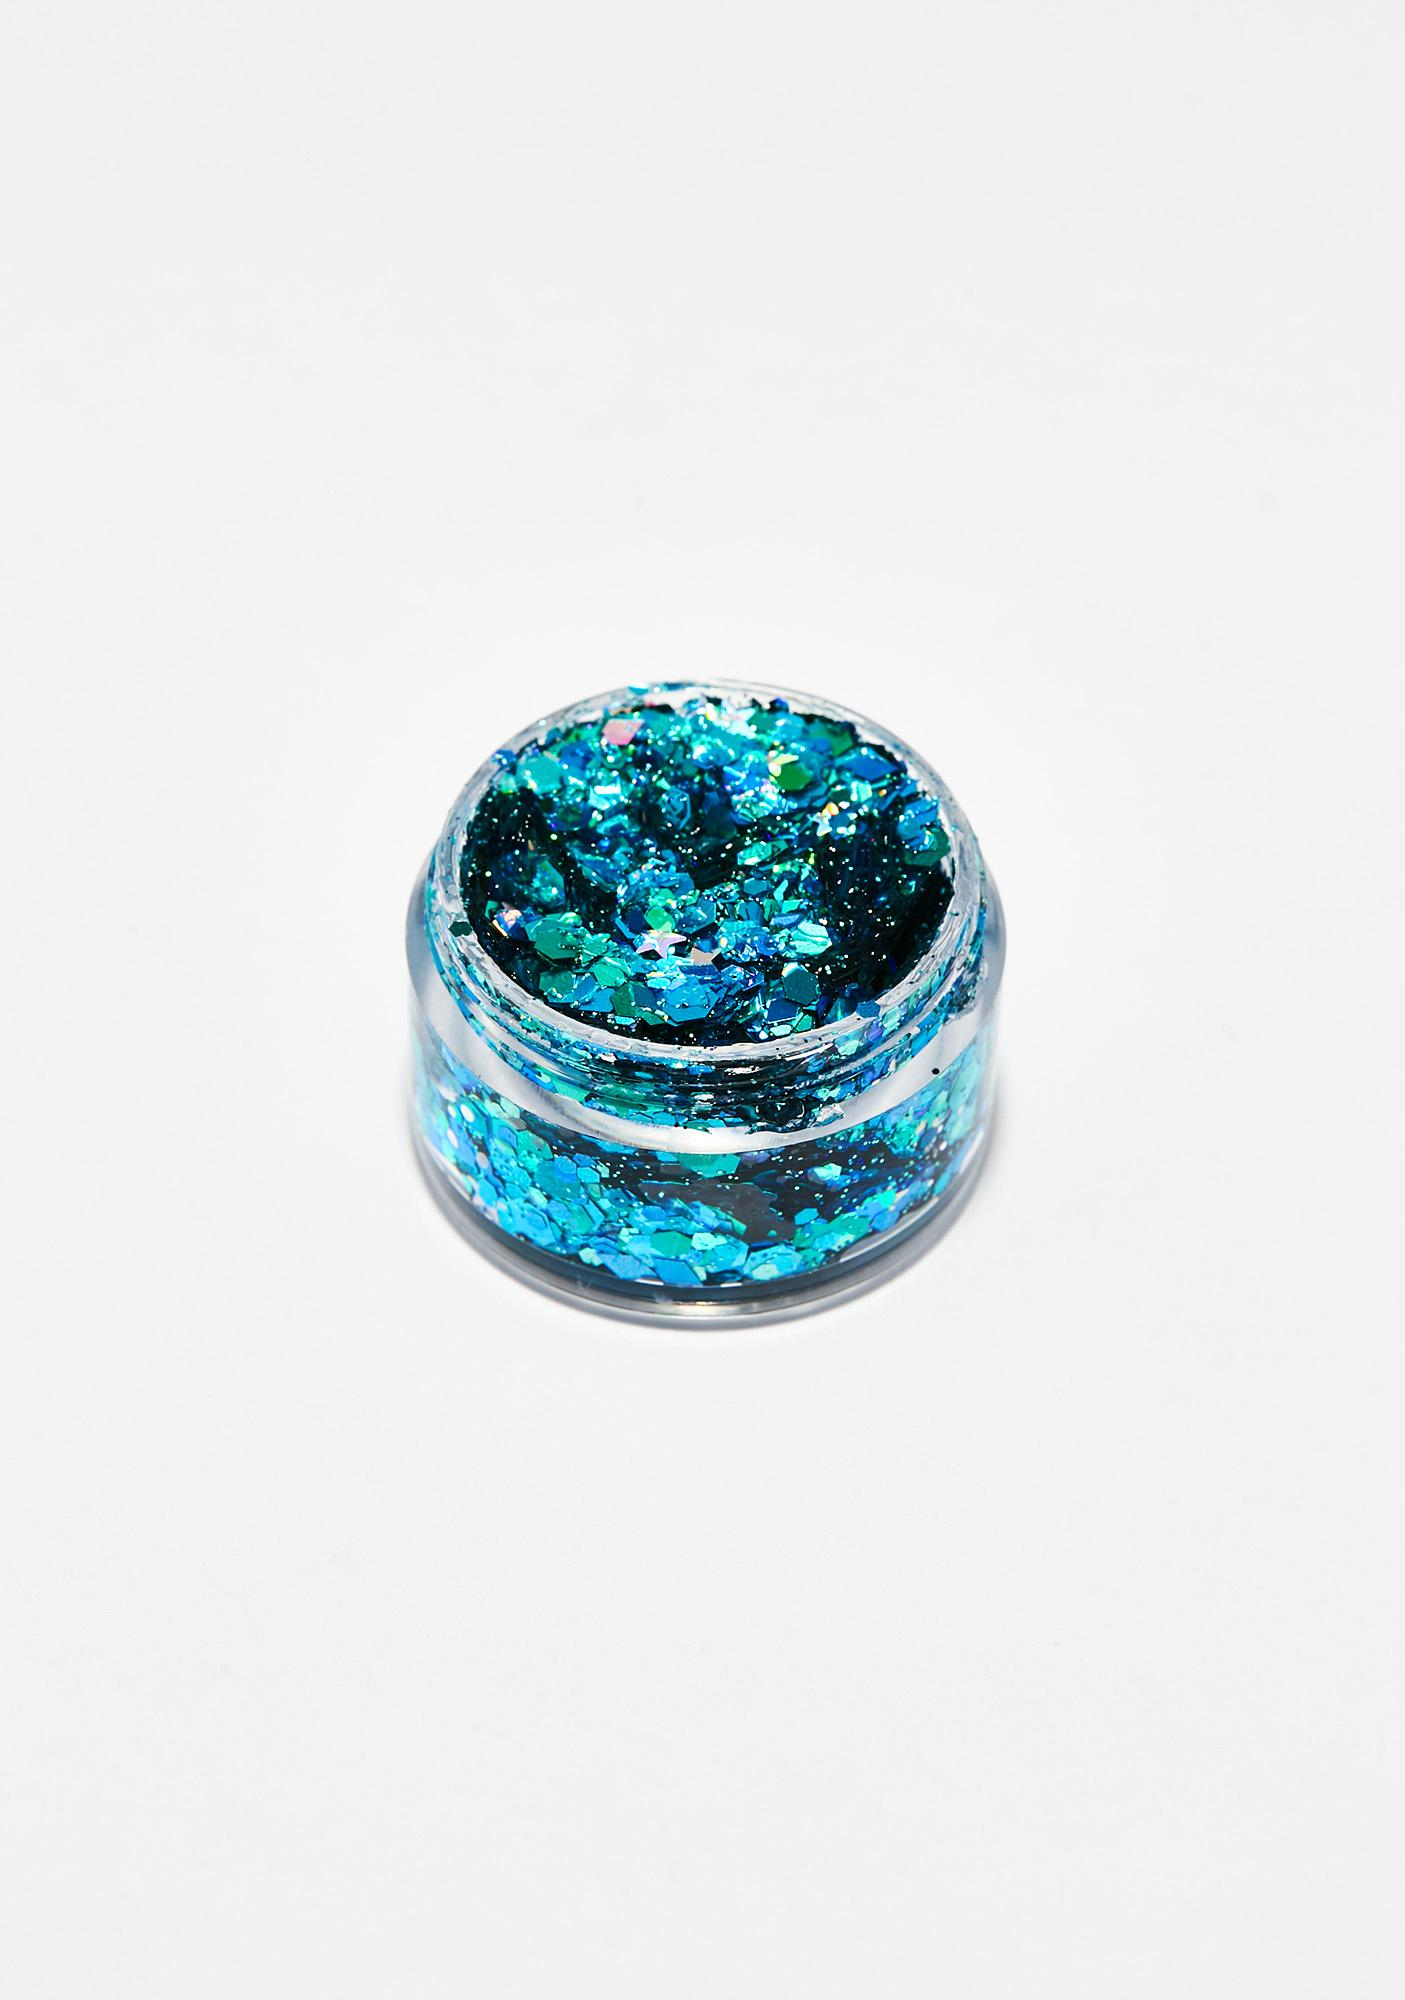 Uniglitter Blue Sea Unicorn Glitter Gel